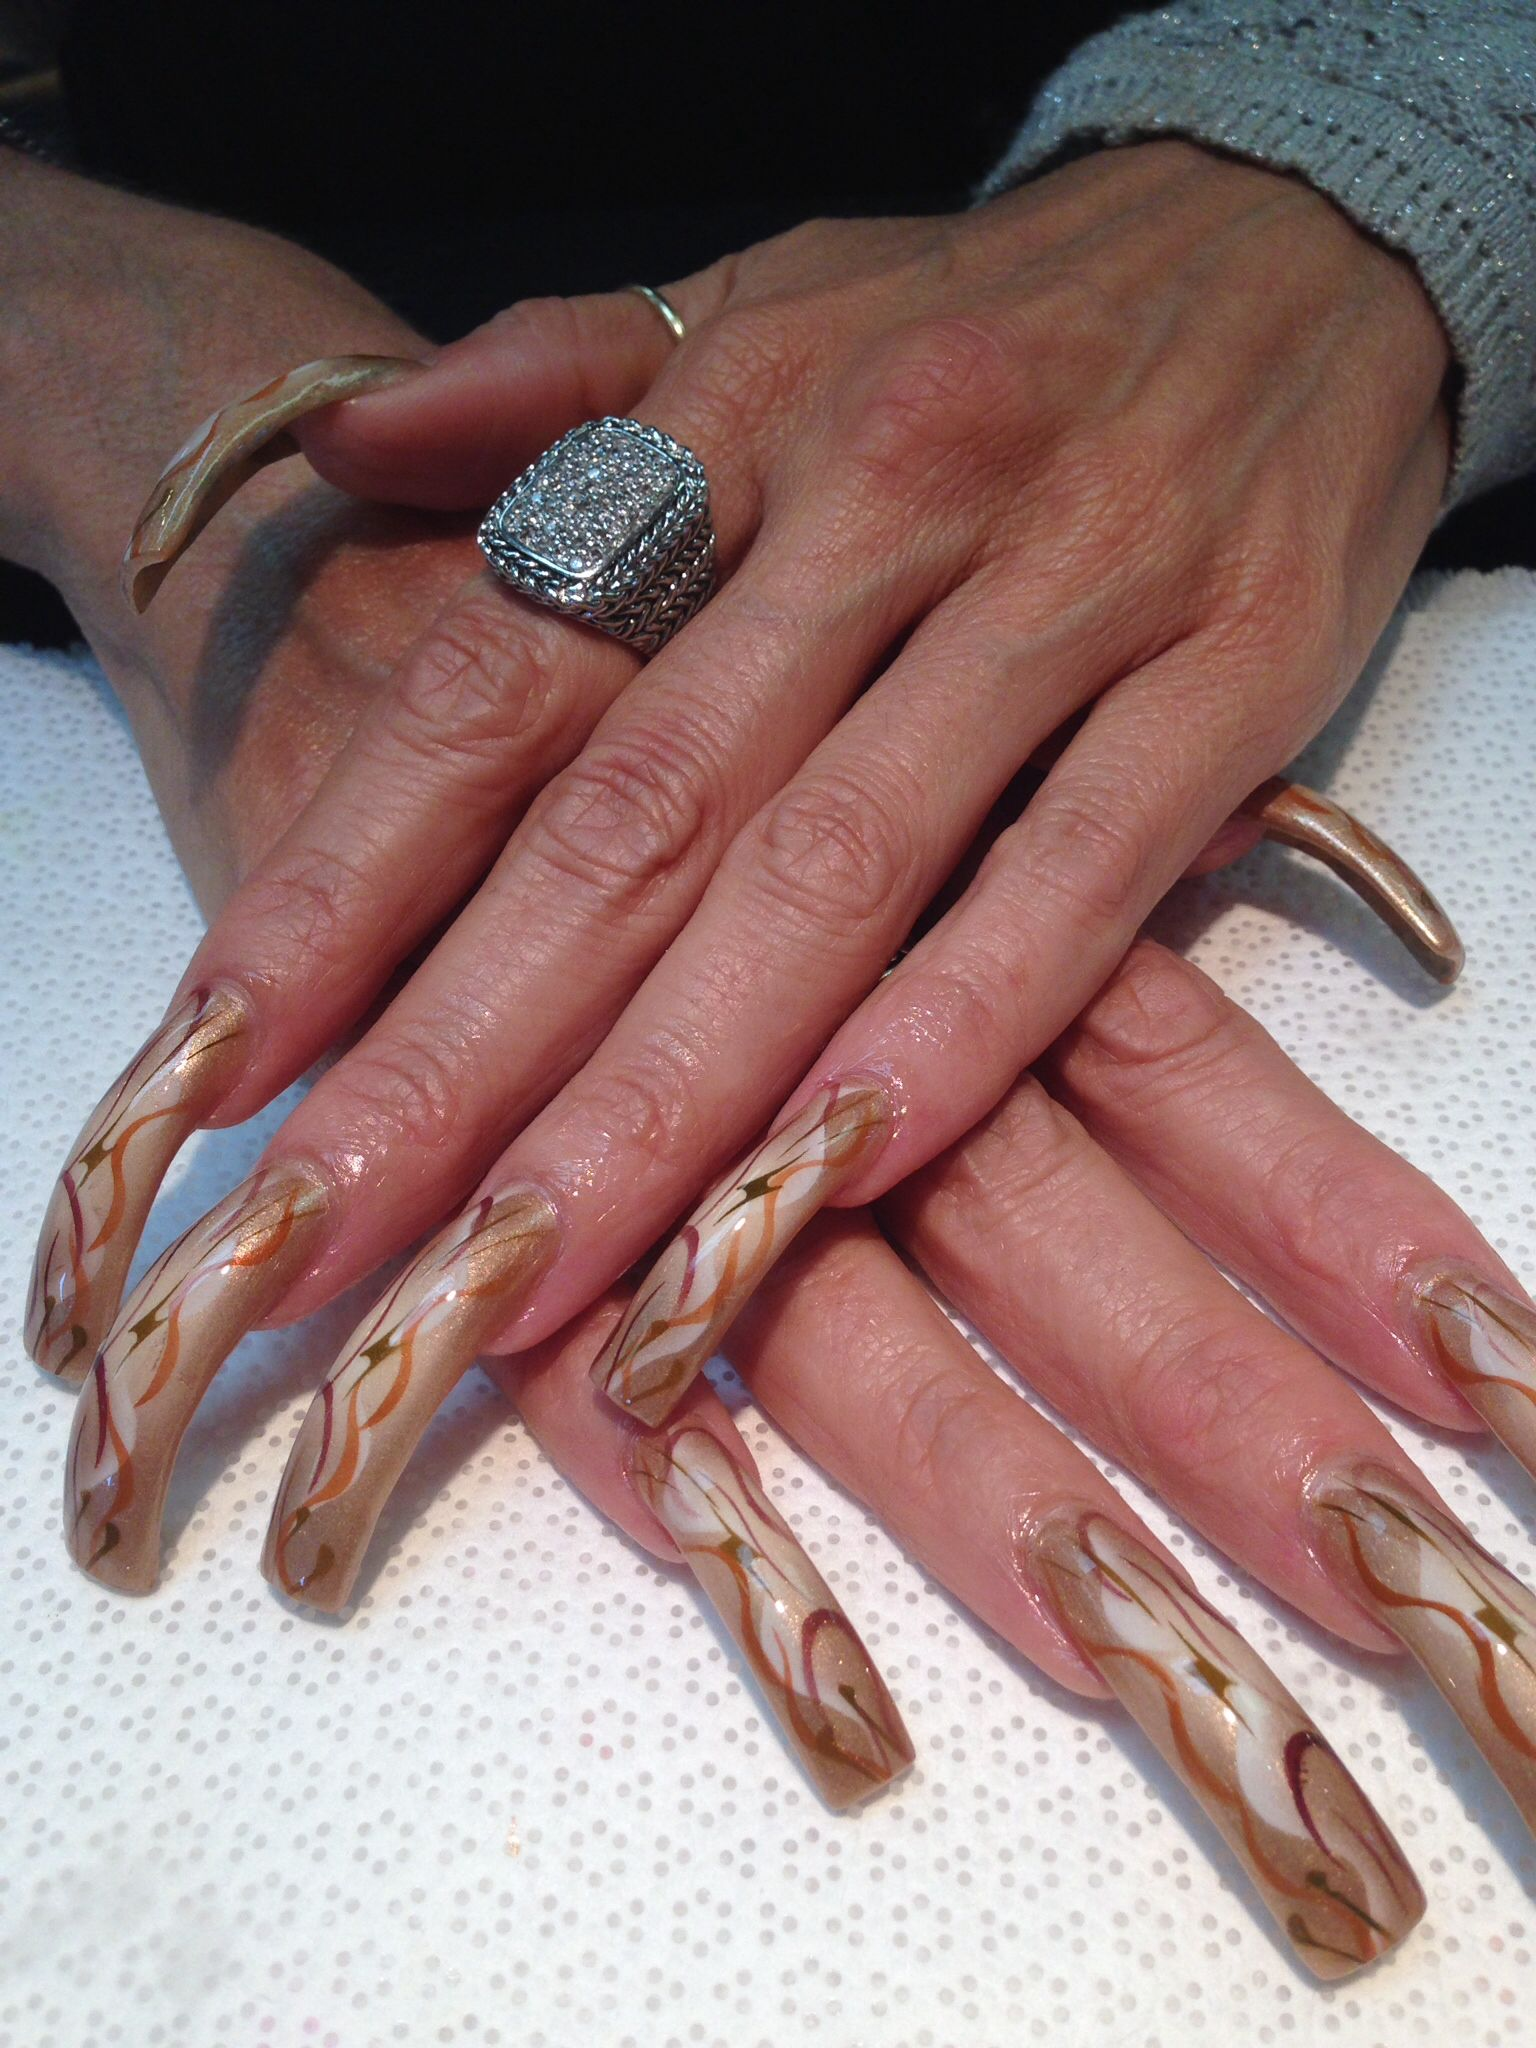 Airbrush bronze long nails | Long acrylic nails, Airbrush ...